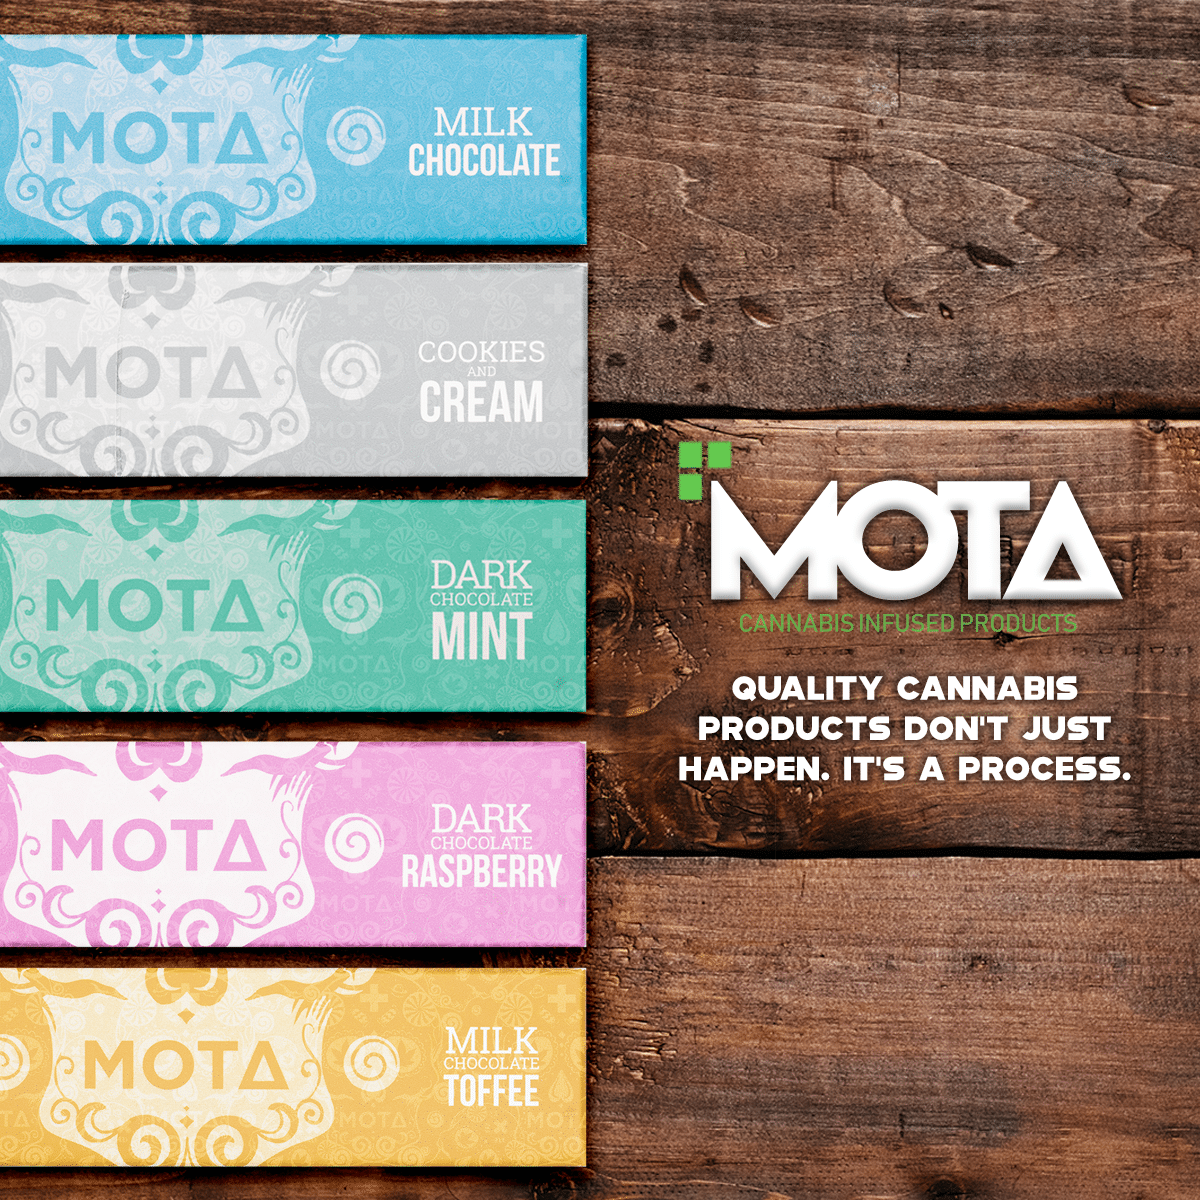 Chocolate Bars by Mota Cannabis by Green Society - Image © 2018 Green Society. All Rights Reserved.